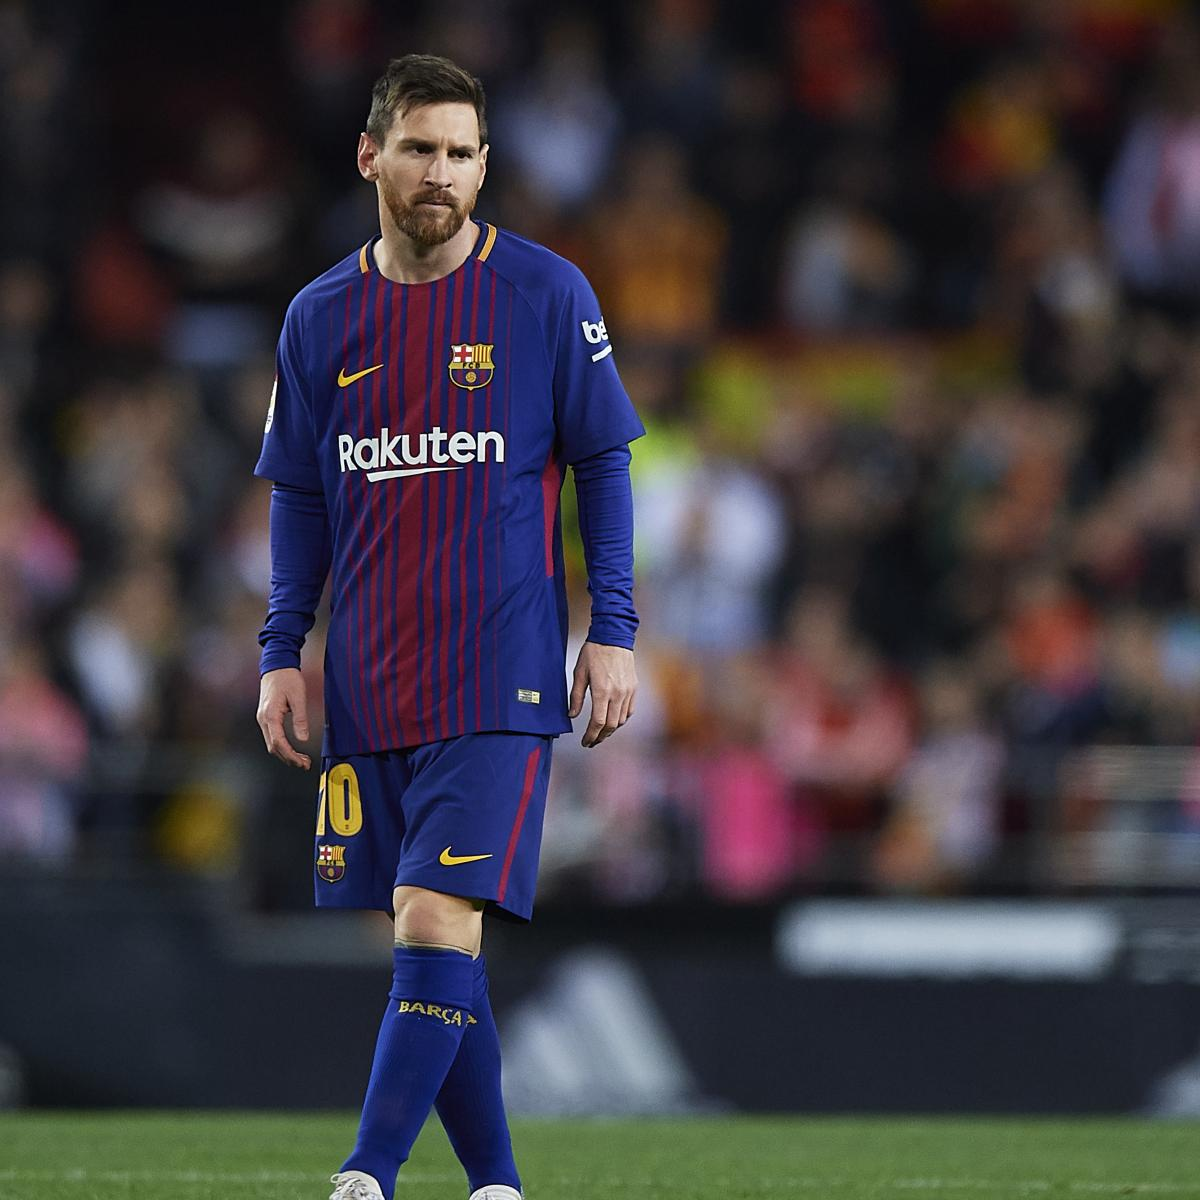 Barcelona Vs. Celta Vigo: Team News, Preview, Live Stream